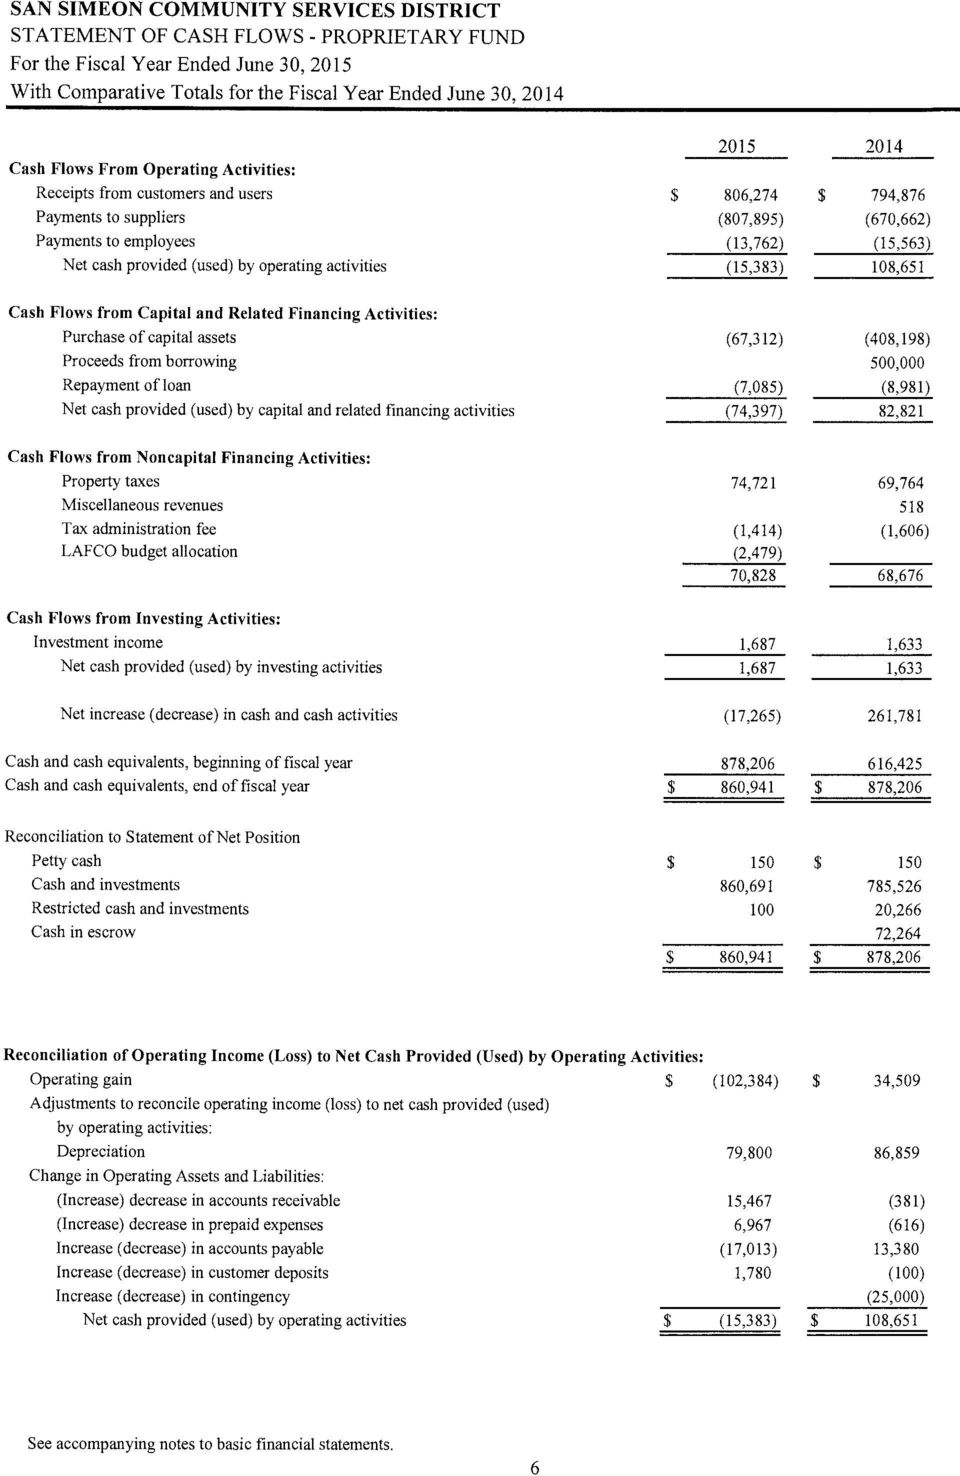 from Capital and Related Financing Activities: Purchase of capital assets (67,312) (408,198) Proceeds from borrowing 500,000 Repayment of loan (7,085) (8,981) Net cash provided (used) by capital and